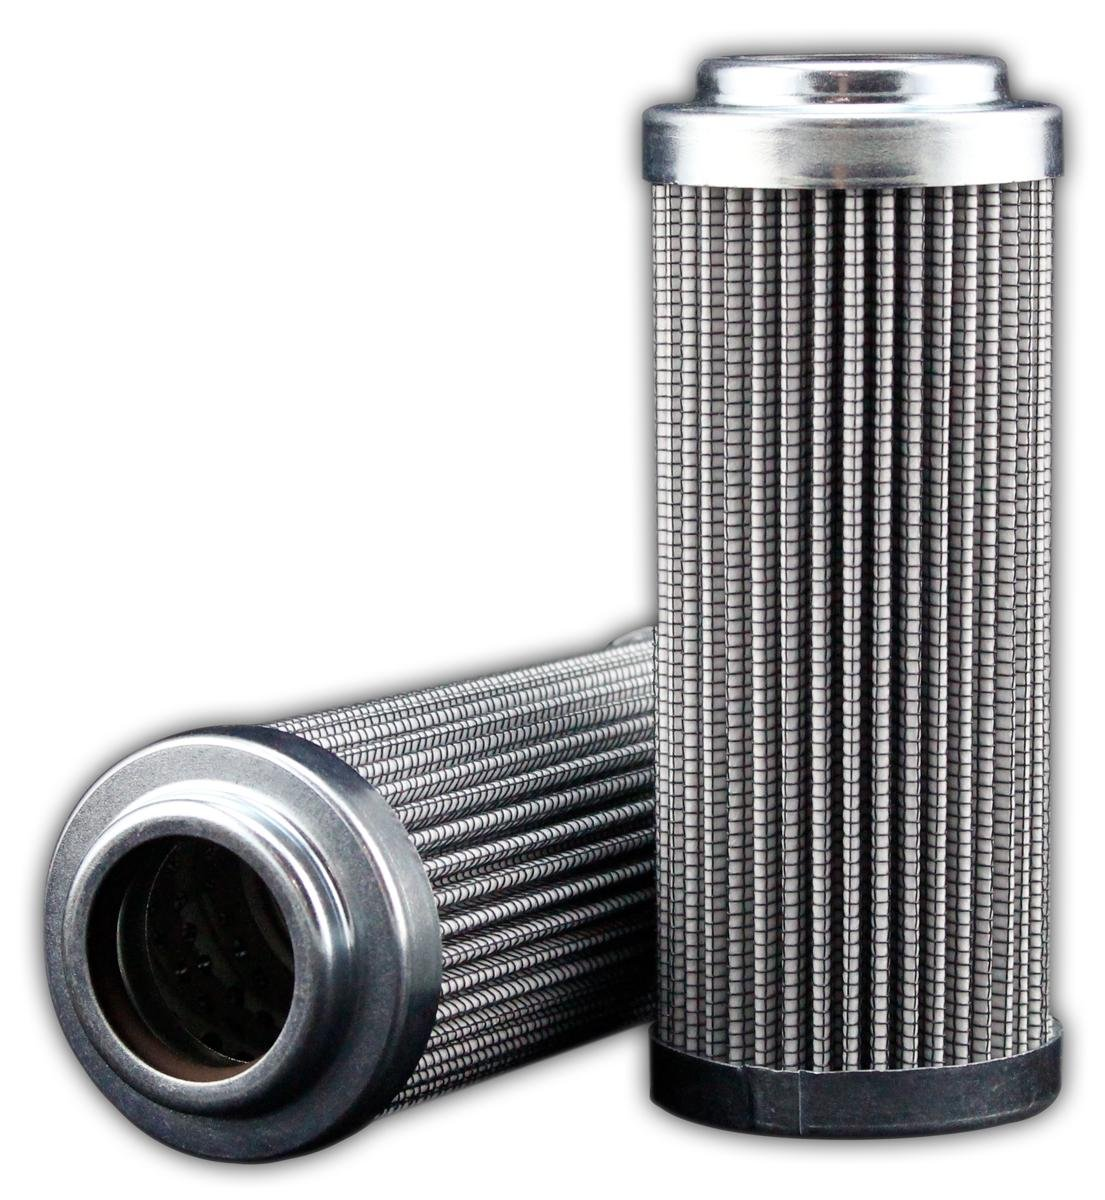 Quincy CPNE01300 compatible filter element by Millennium-Filters.